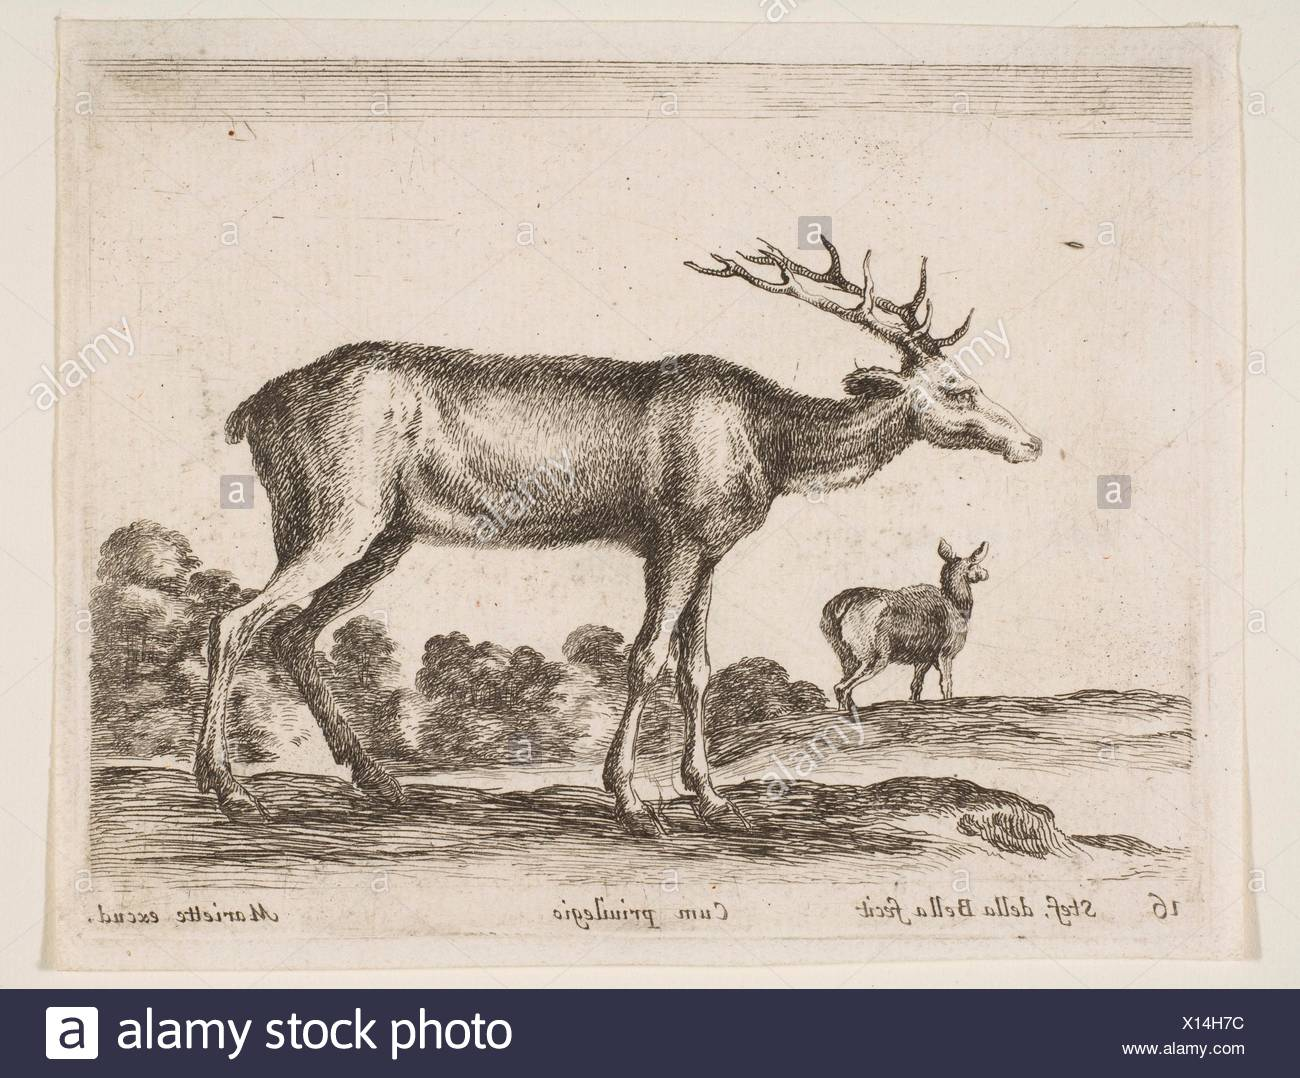 Plate 16: stag, from 'Various animals' (Diversi animali). Series/Portfolio: 'Various animals' (Diversi animali); Artist: Stefano della Bella - Stock Image